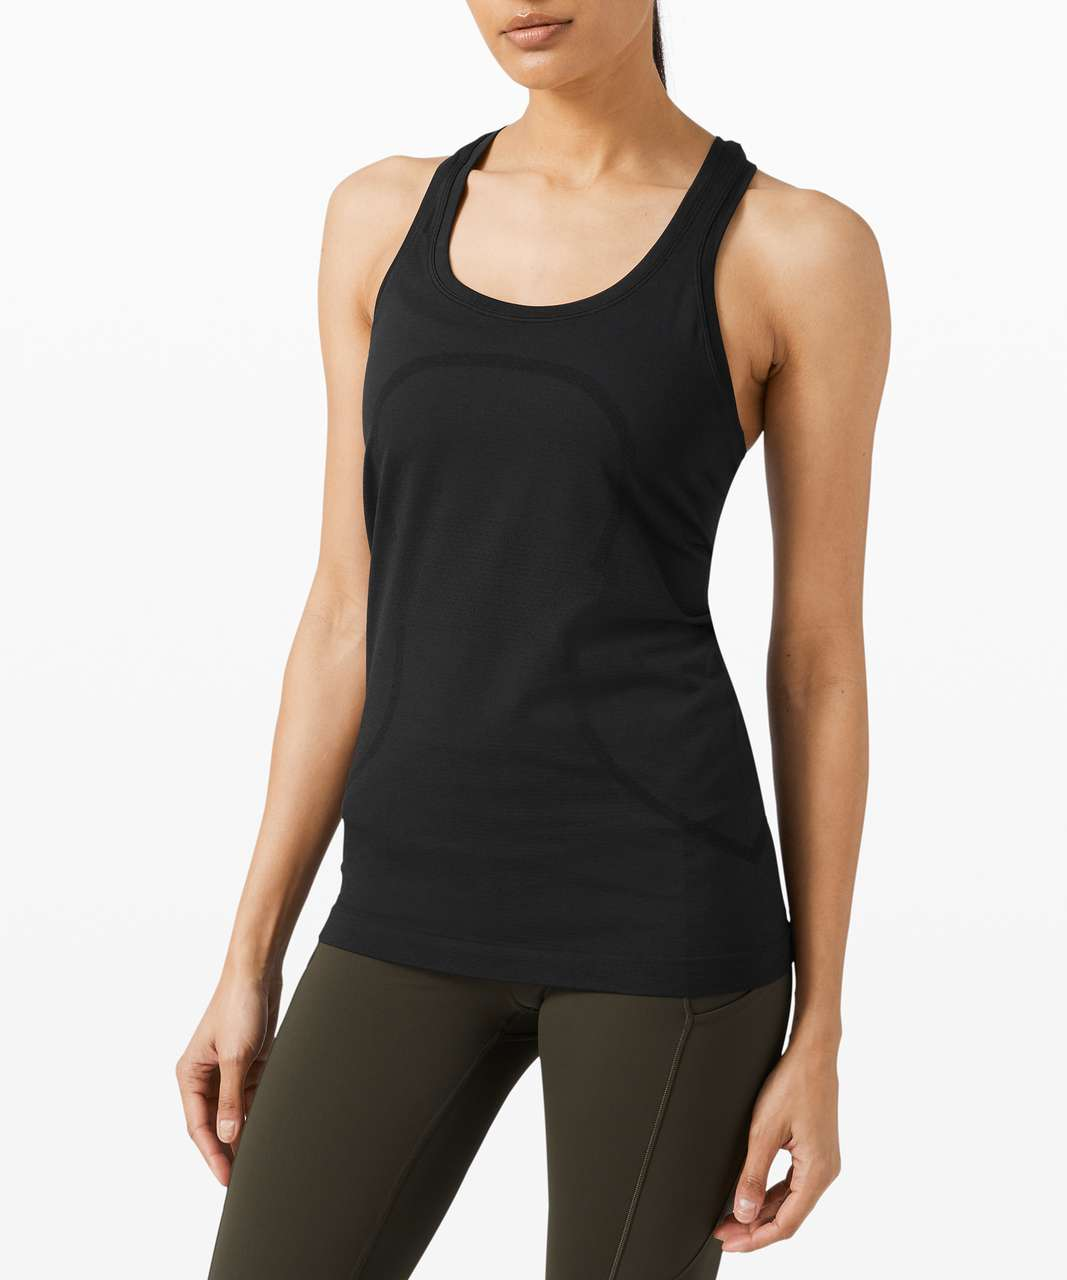 Lululemon Swiftly Tech Racerback 2.0 - Black / Black